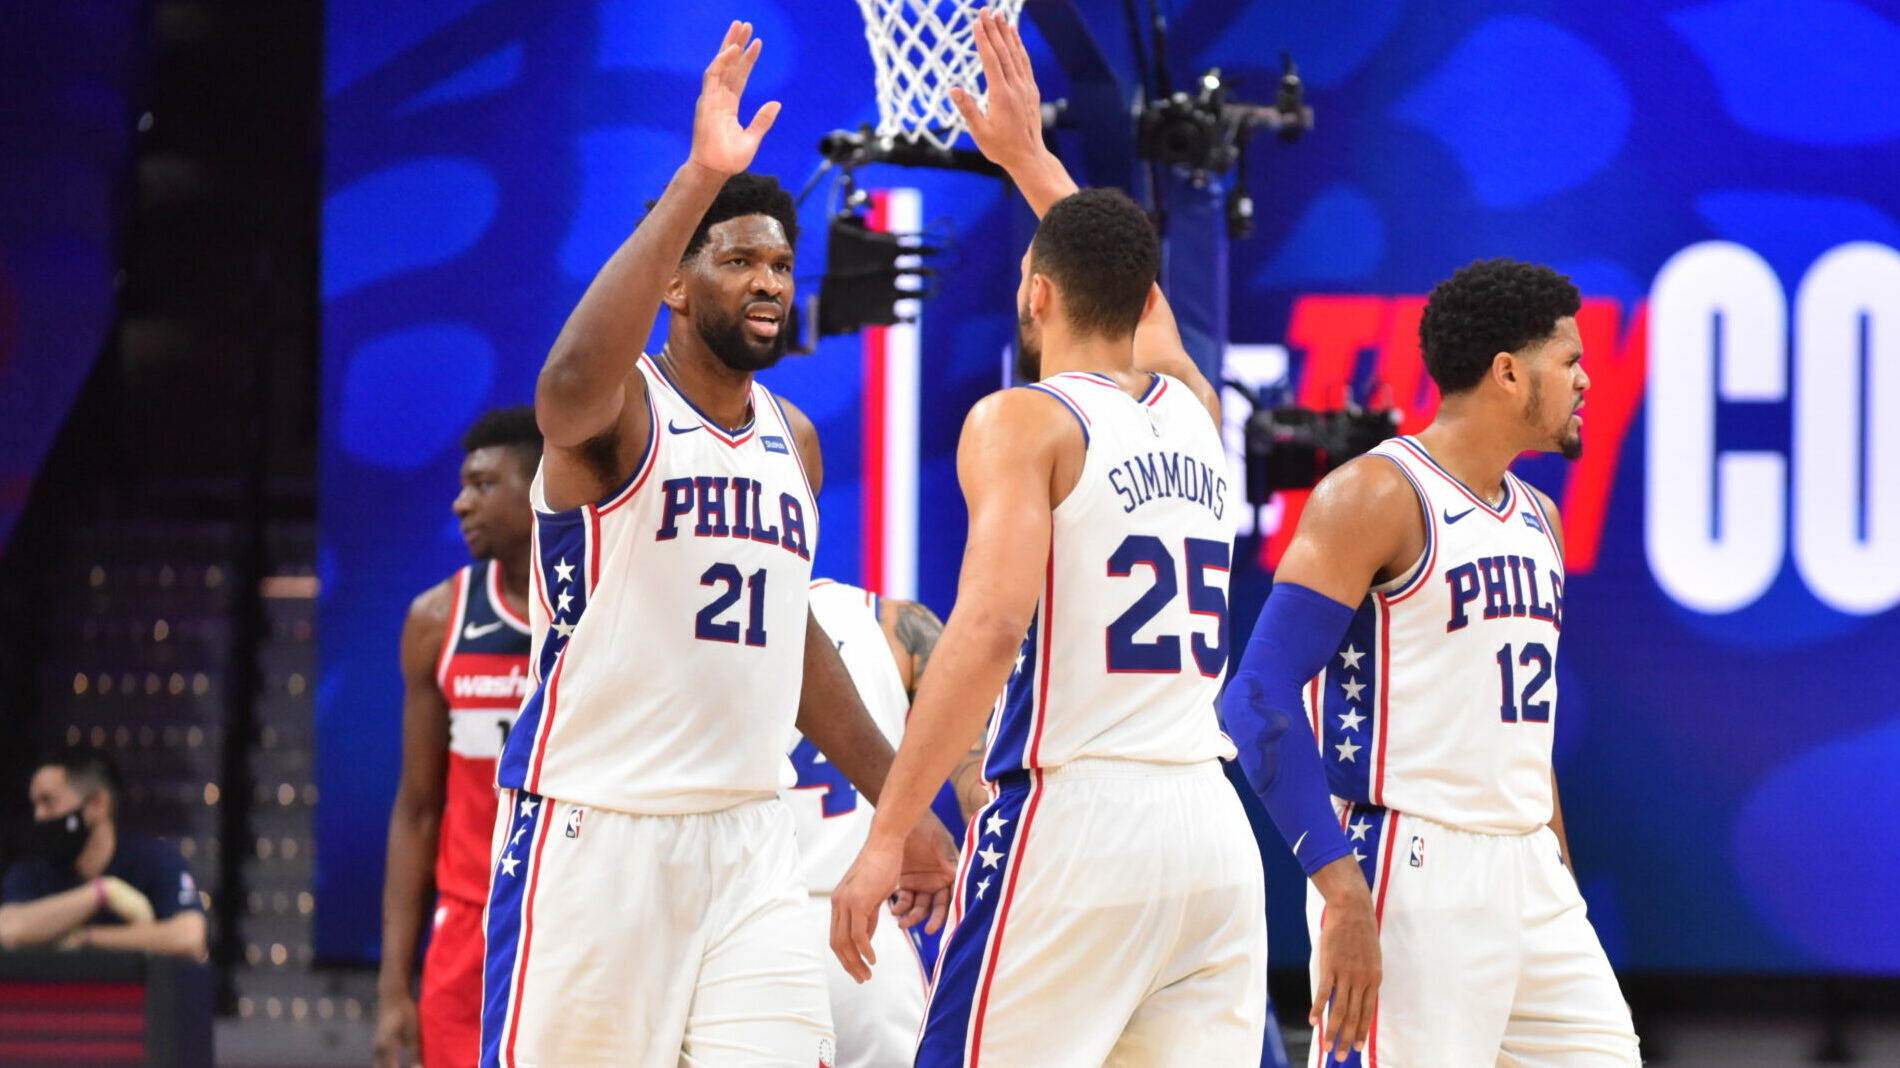 2021 Midseason report: Philadelphia 76ers